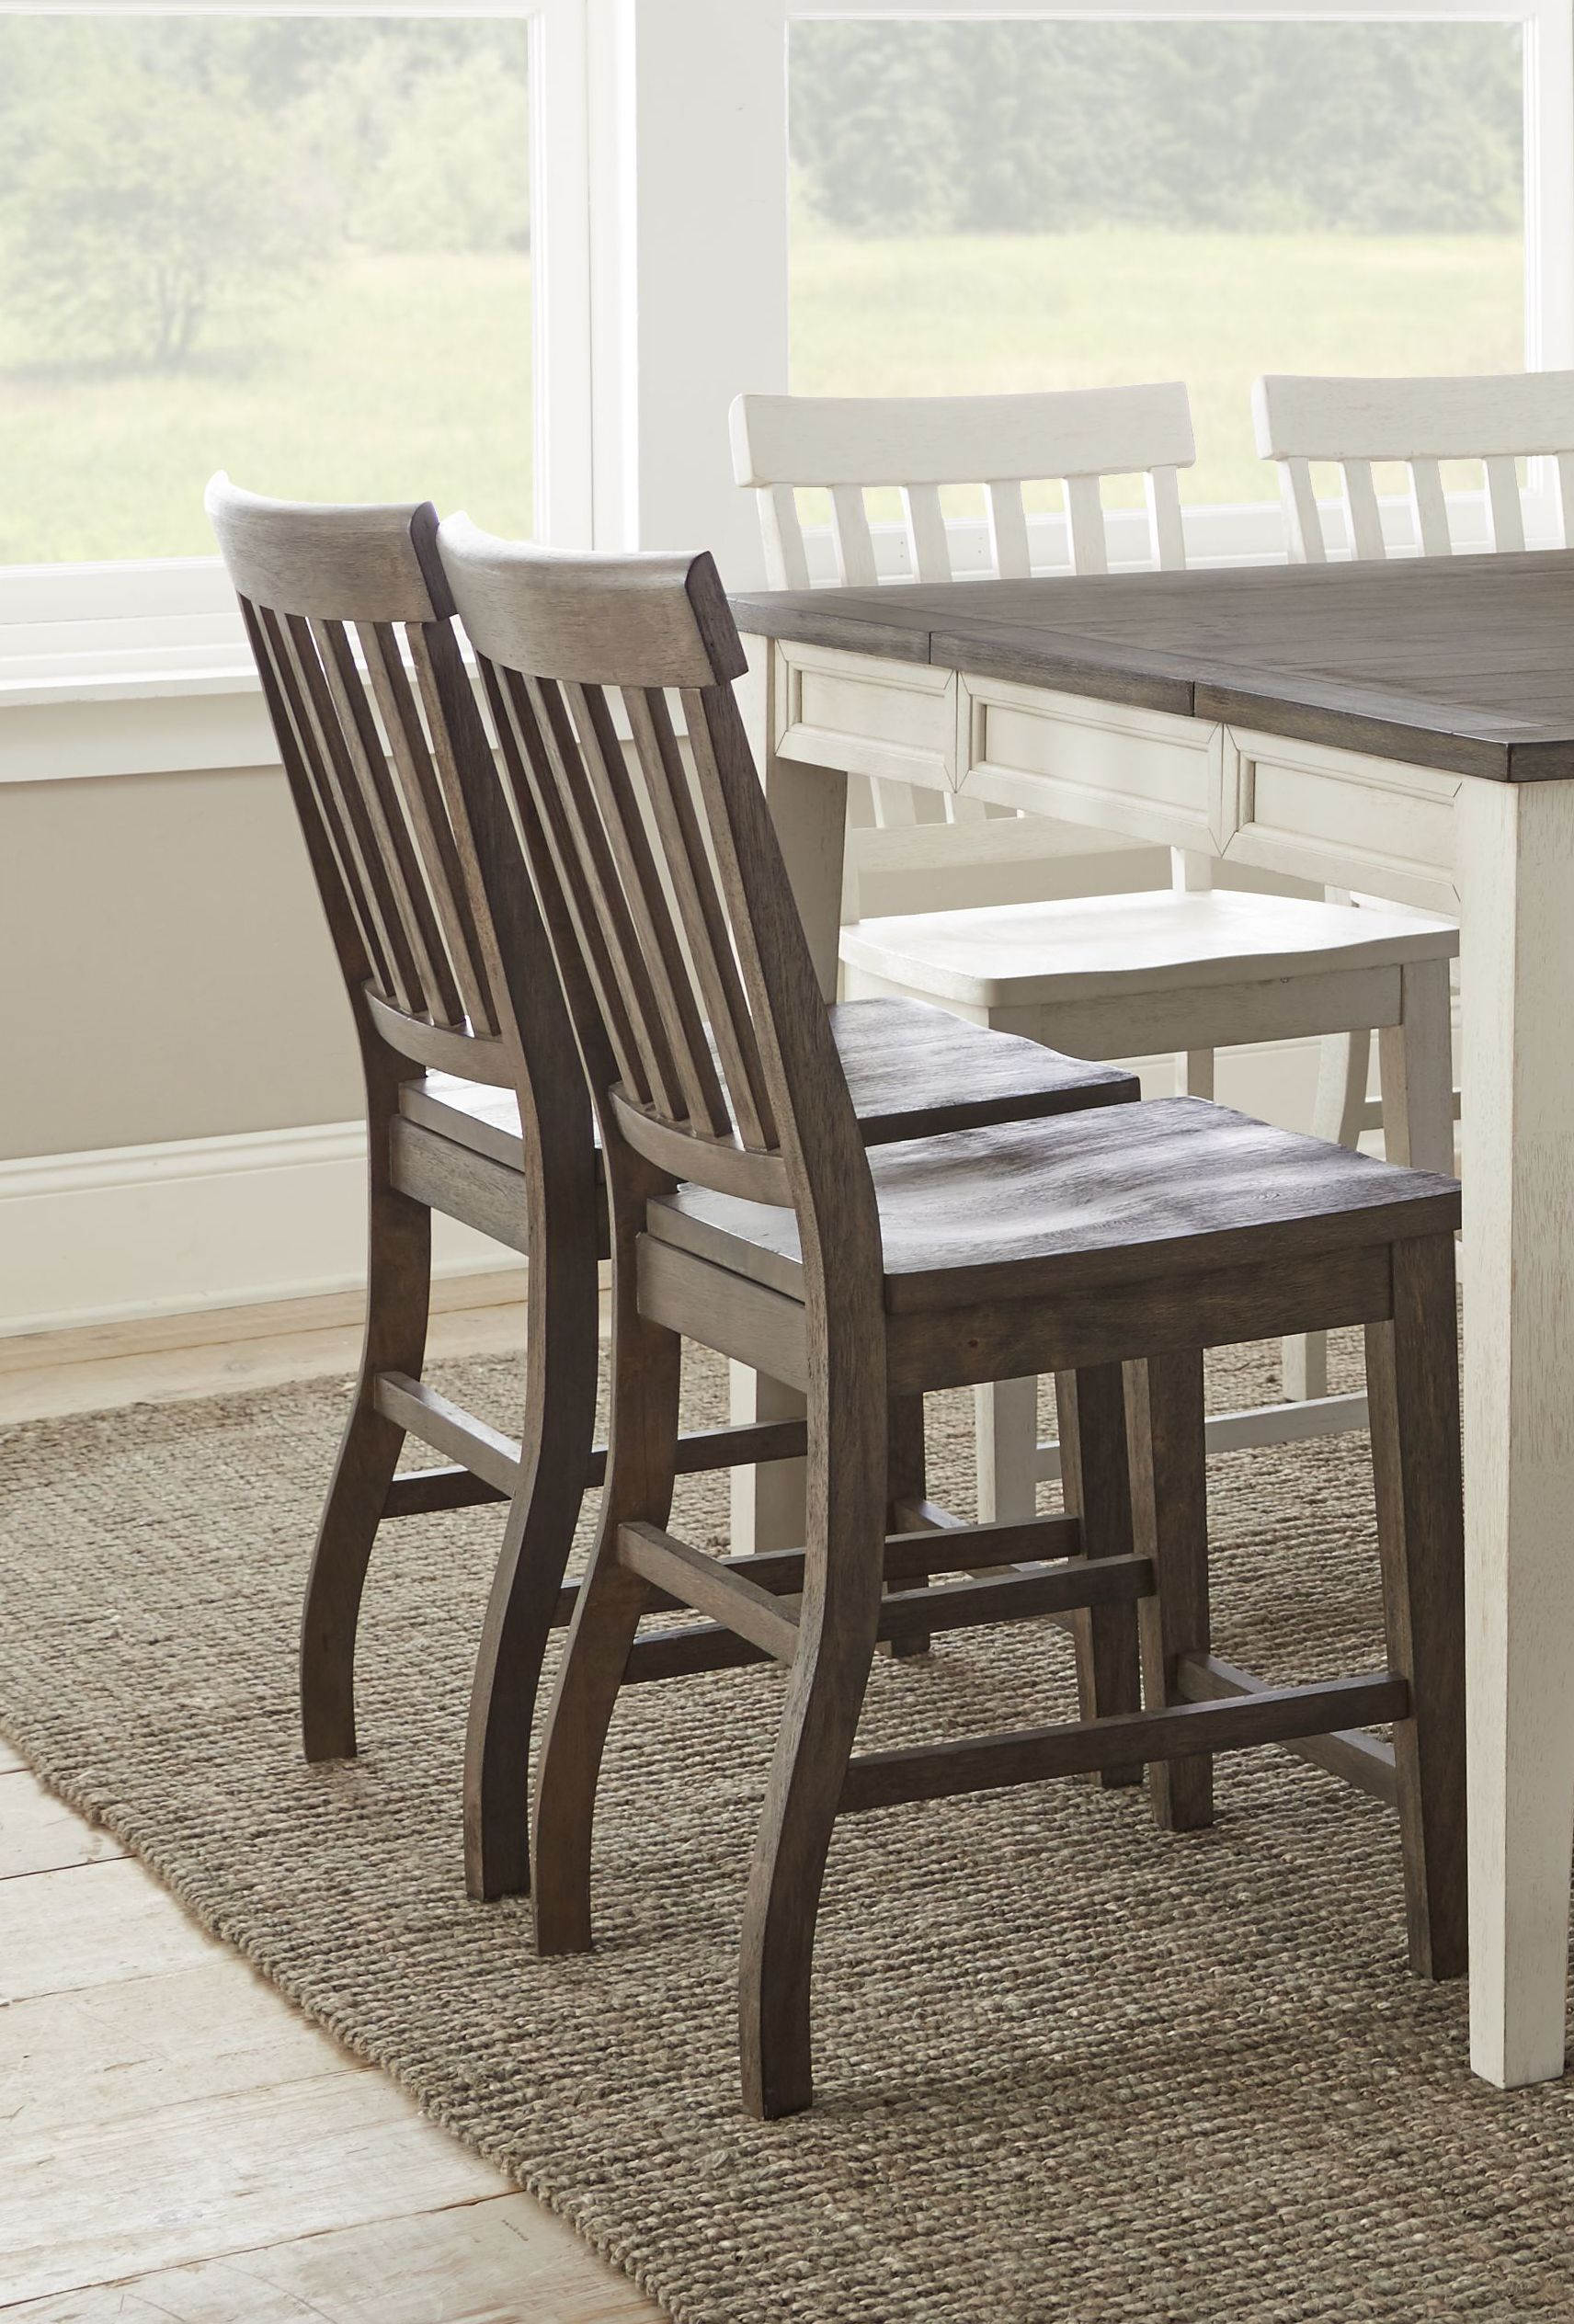 2 Steve Silver Cayla Dark Oak Counter Chairs The Classy Home